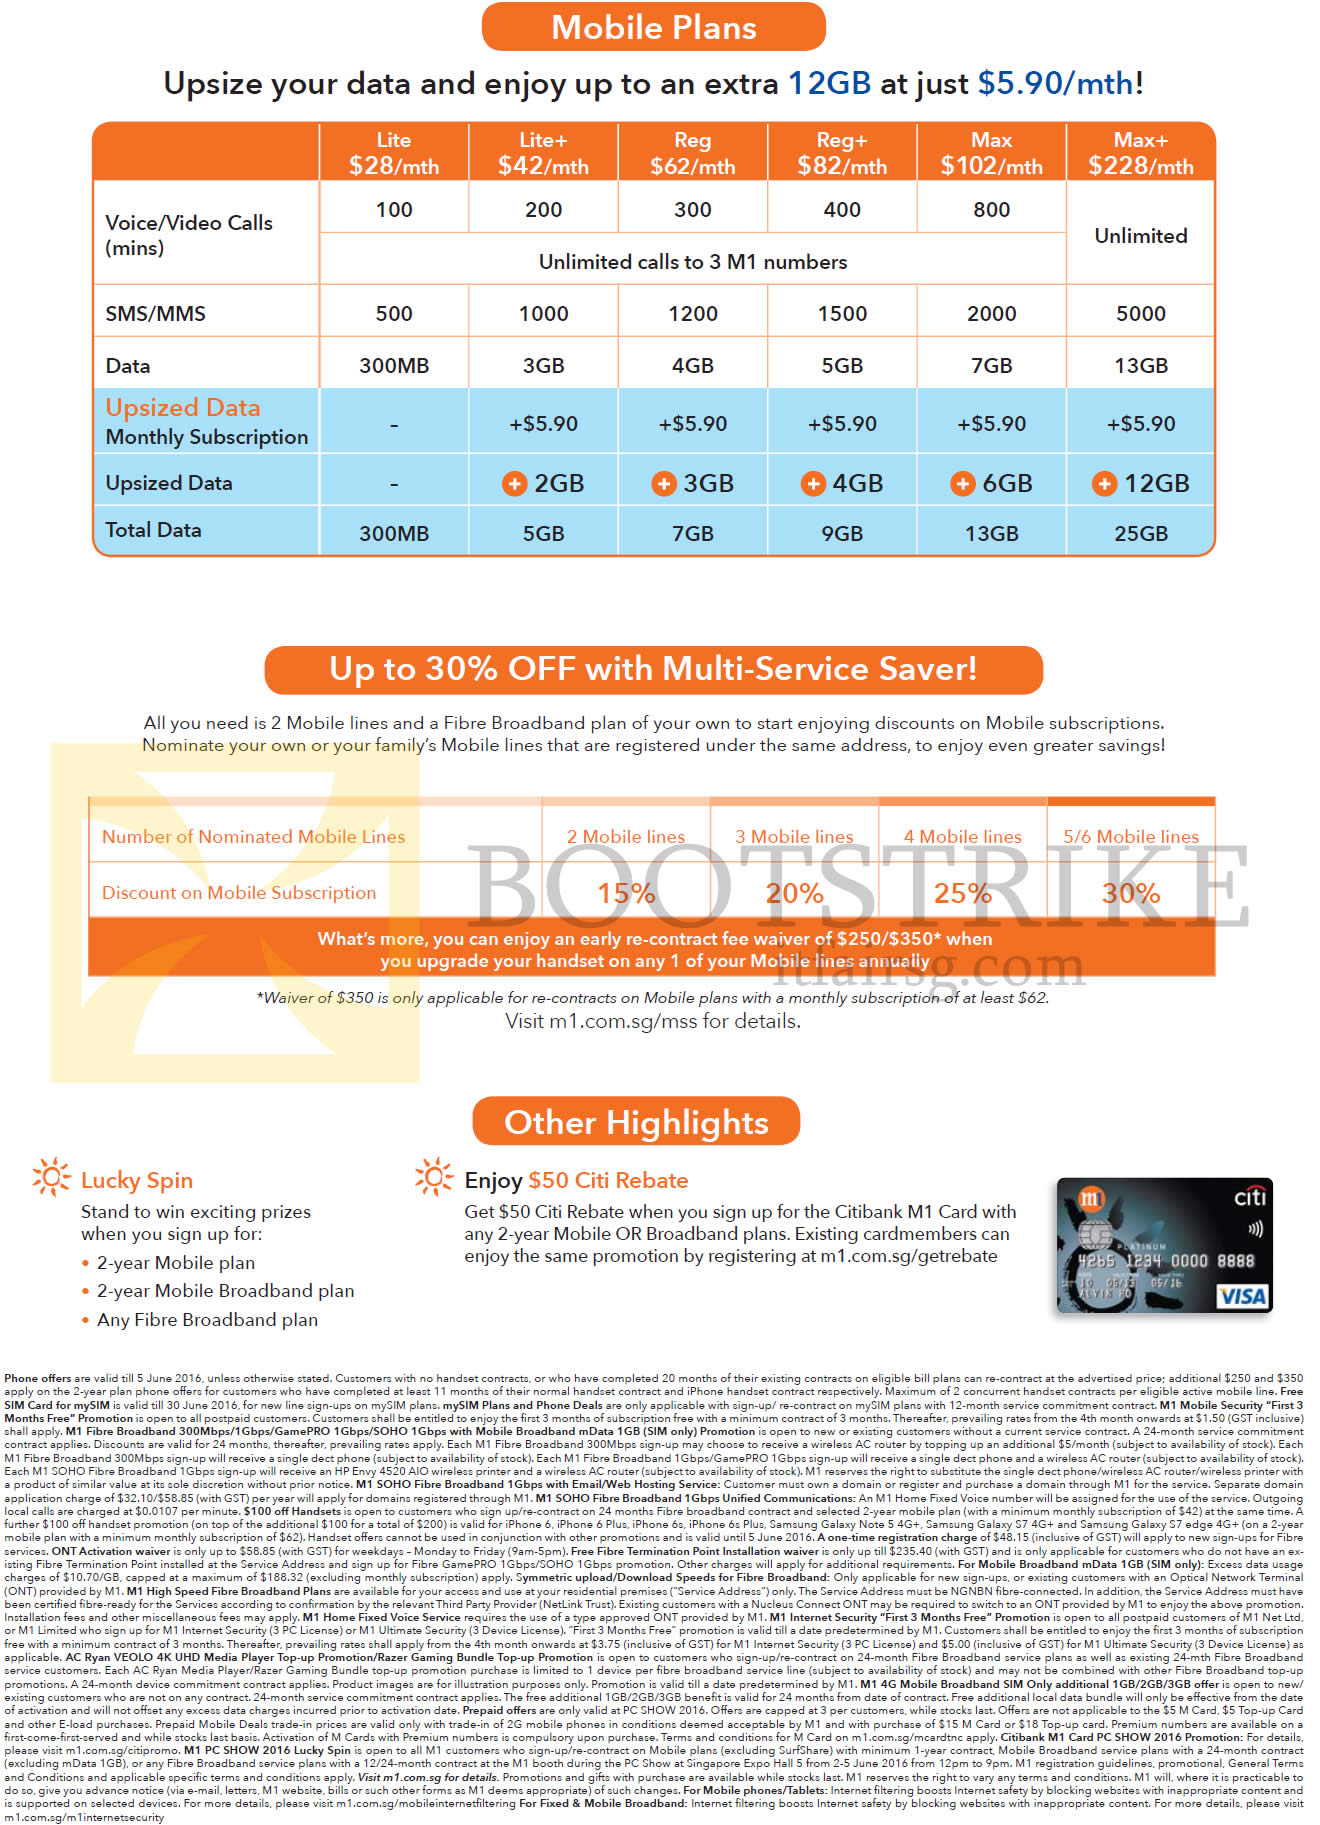 PC SHOW 2016 price list image brochure of M1 Mobile Plans, Multi-Service Saver, Other Highlights, Lite, Plus, Reg, Plus, Max, Plus, Lucky Spin, 50 Dollar Citi Rebate